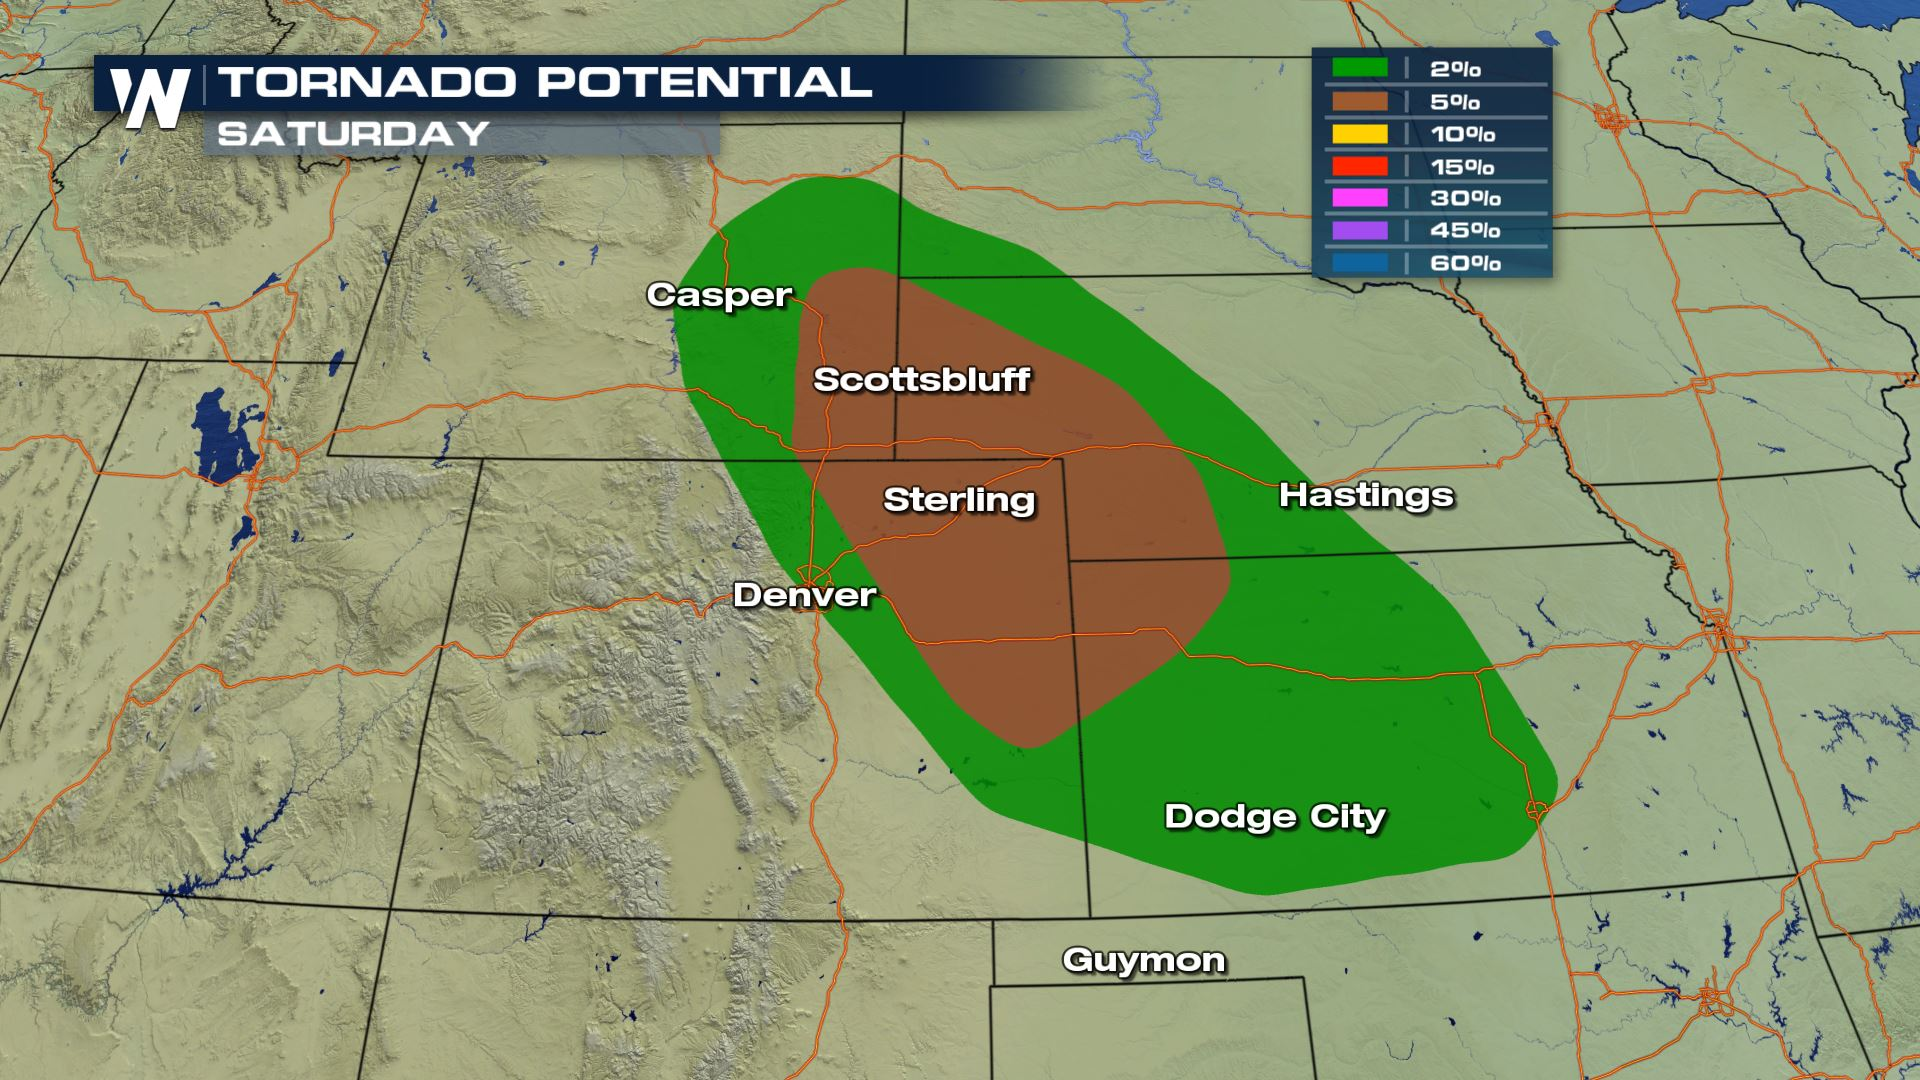 Tornado Map Colorado Tornado Chances for Colorado, Nebraska and Kansas Saturday